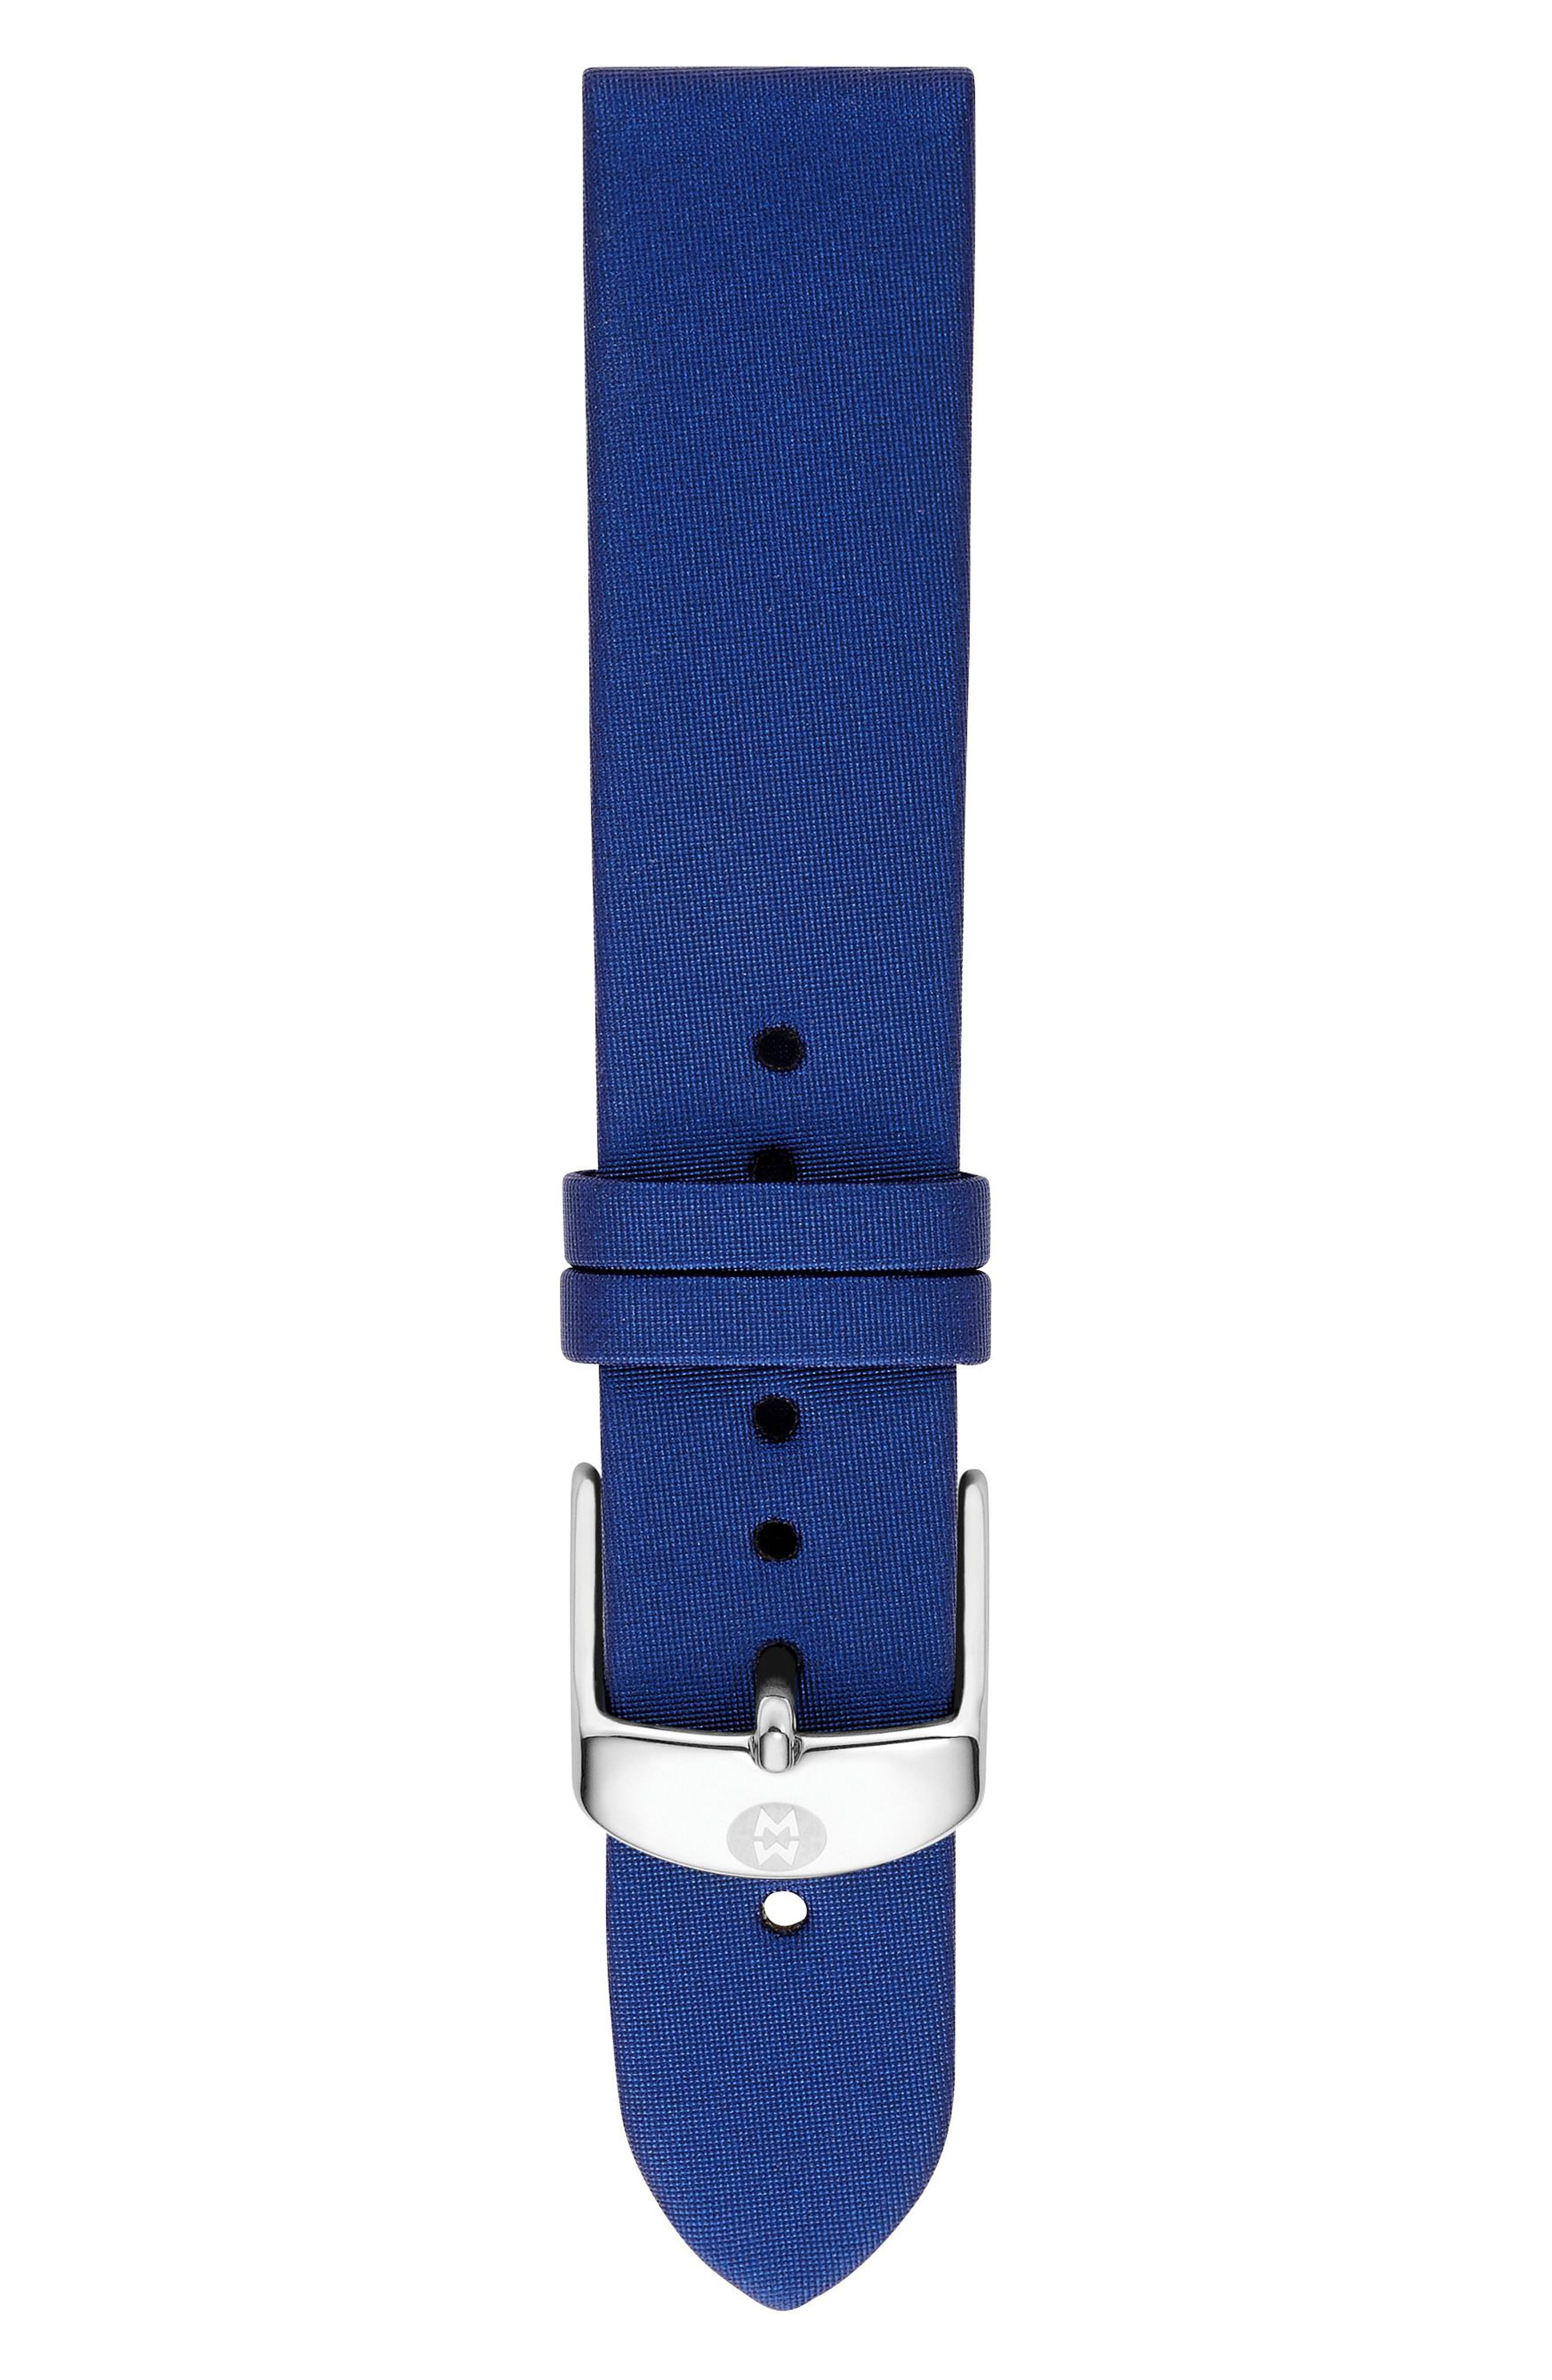 16mm Satin Watch Strap,                         Main,                         color, 400